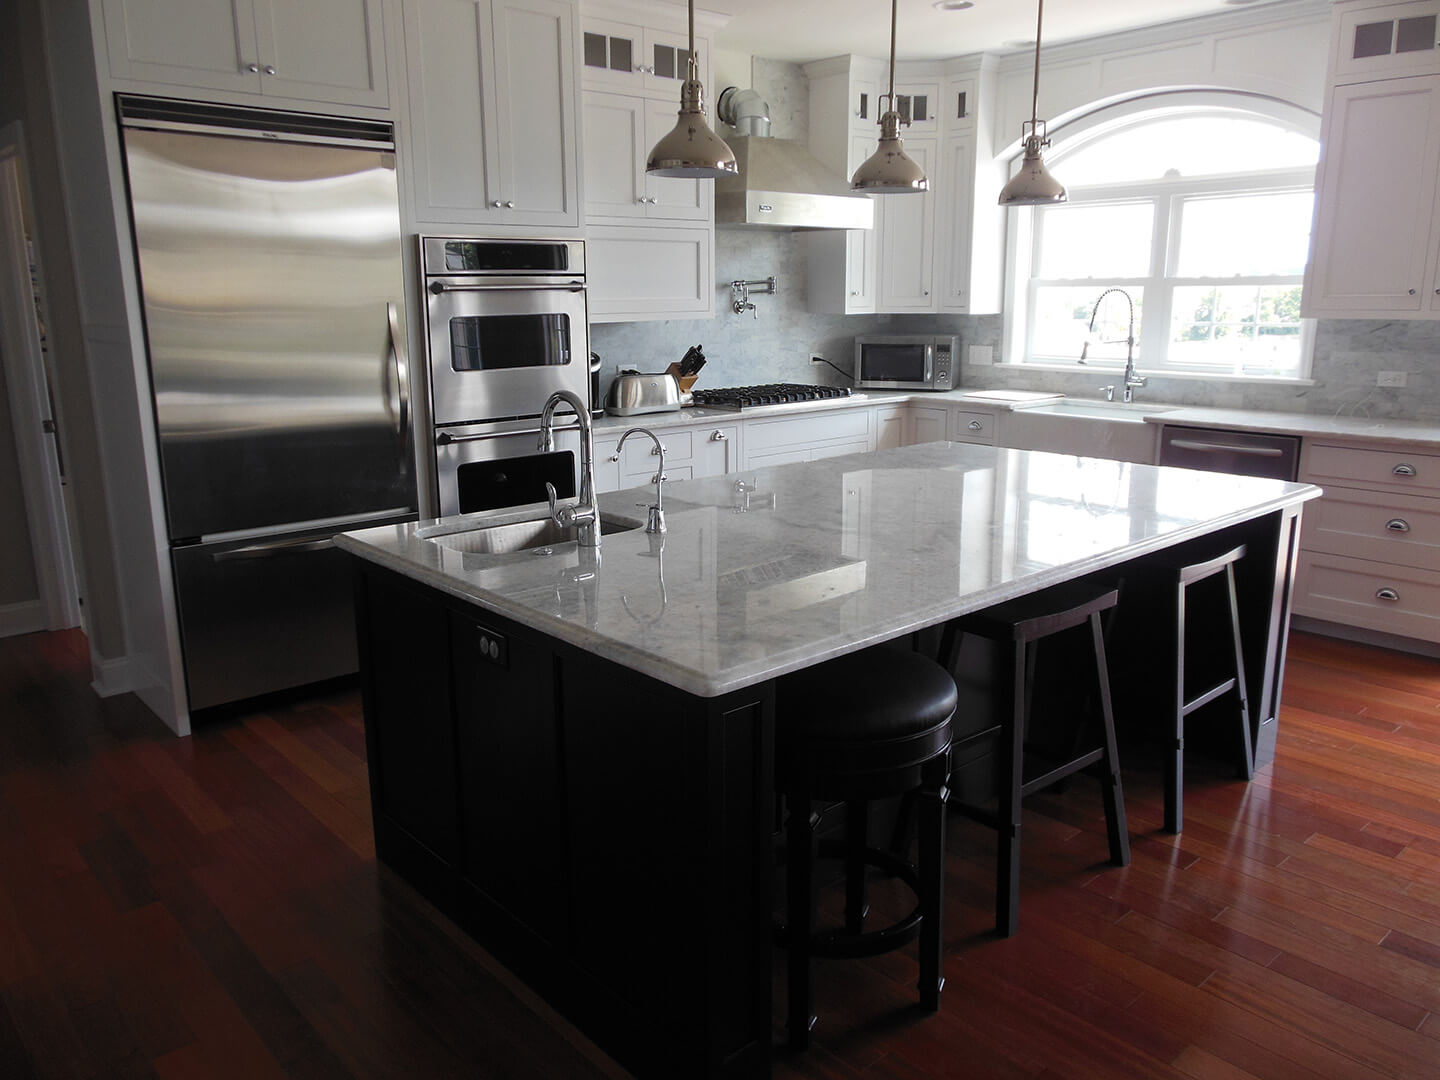 Custom Kitchen Remodel with Hardwood Floors & Marble Countertops